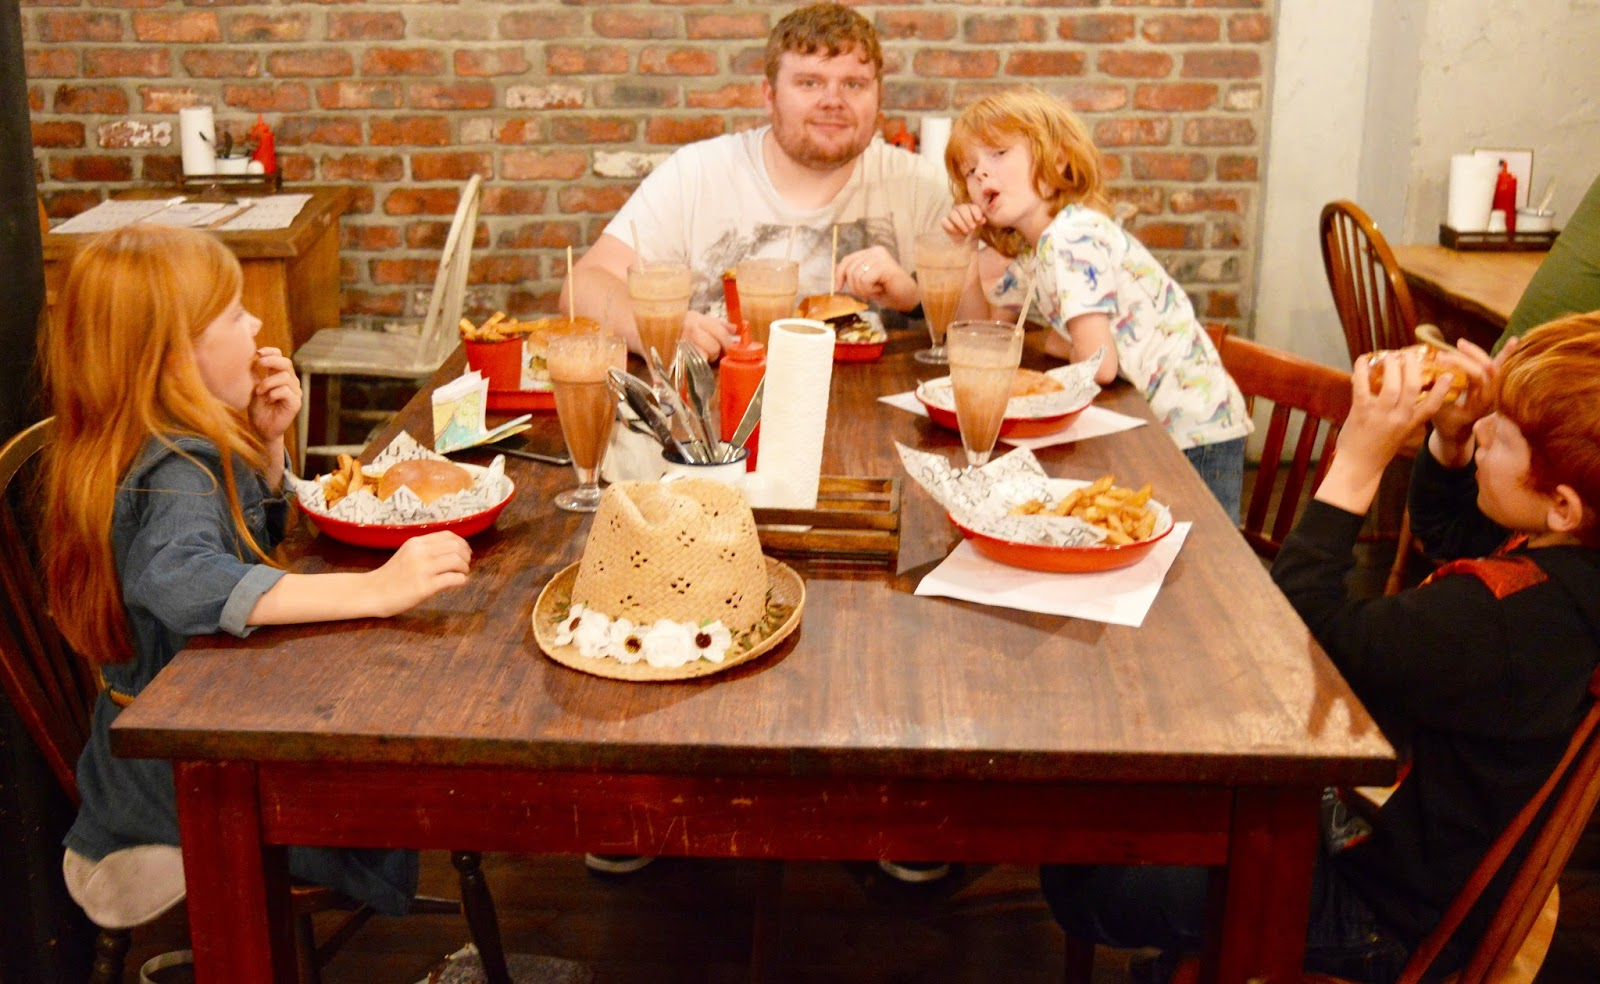 The Fat Hippo Underground with Kids | Simply the Best Burgers in Newcastle - fat hippo underground interior